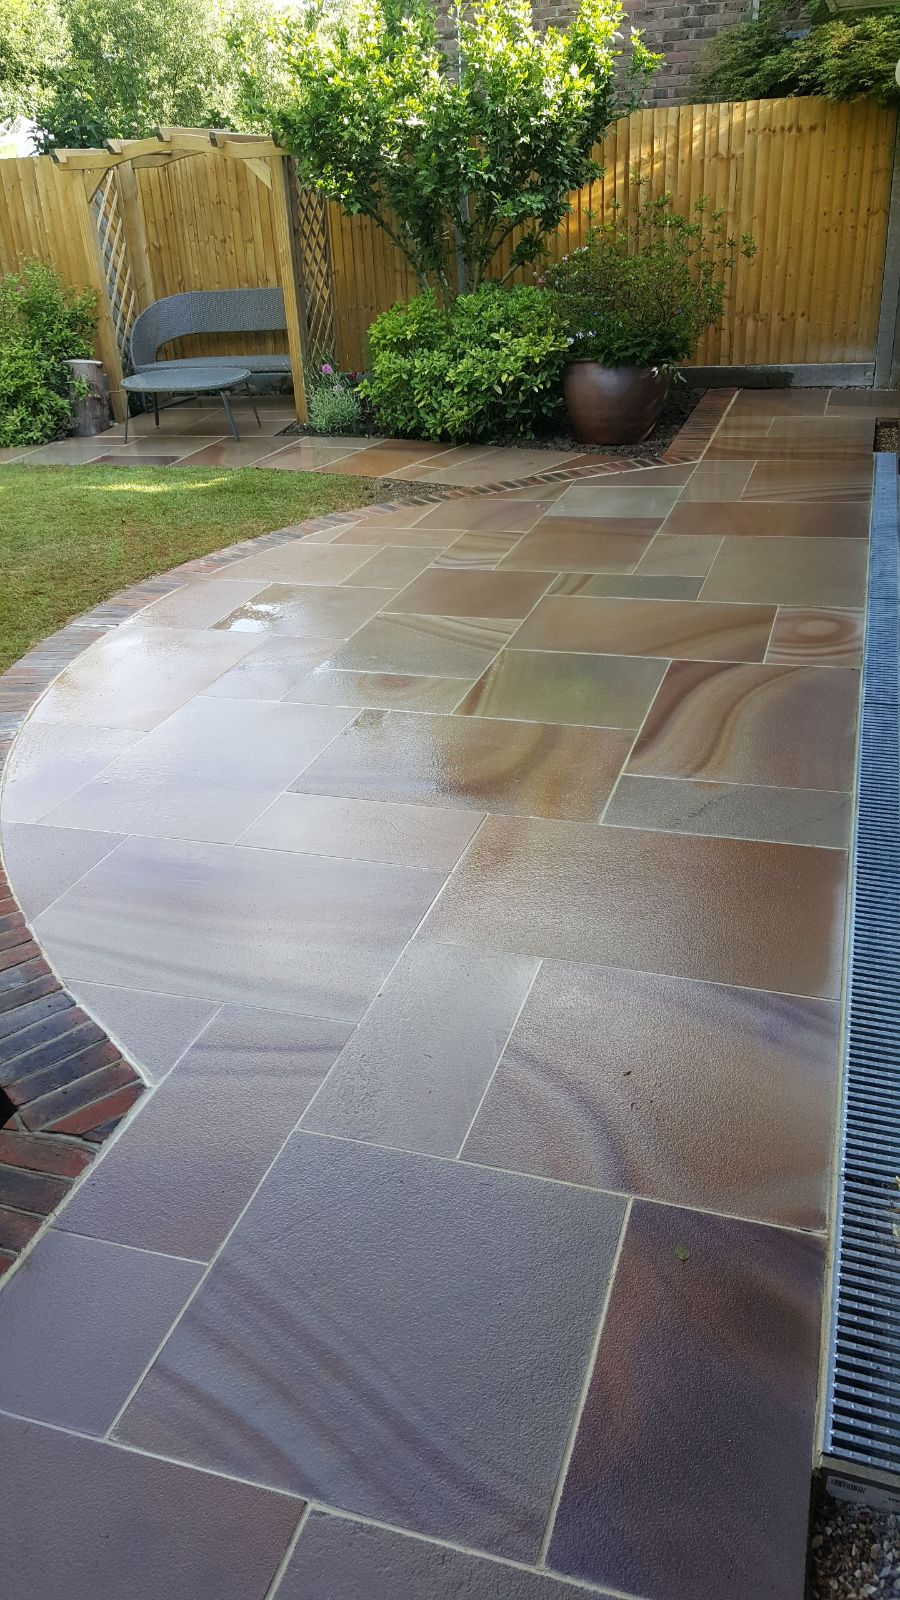 New Patio installed in the horsham area